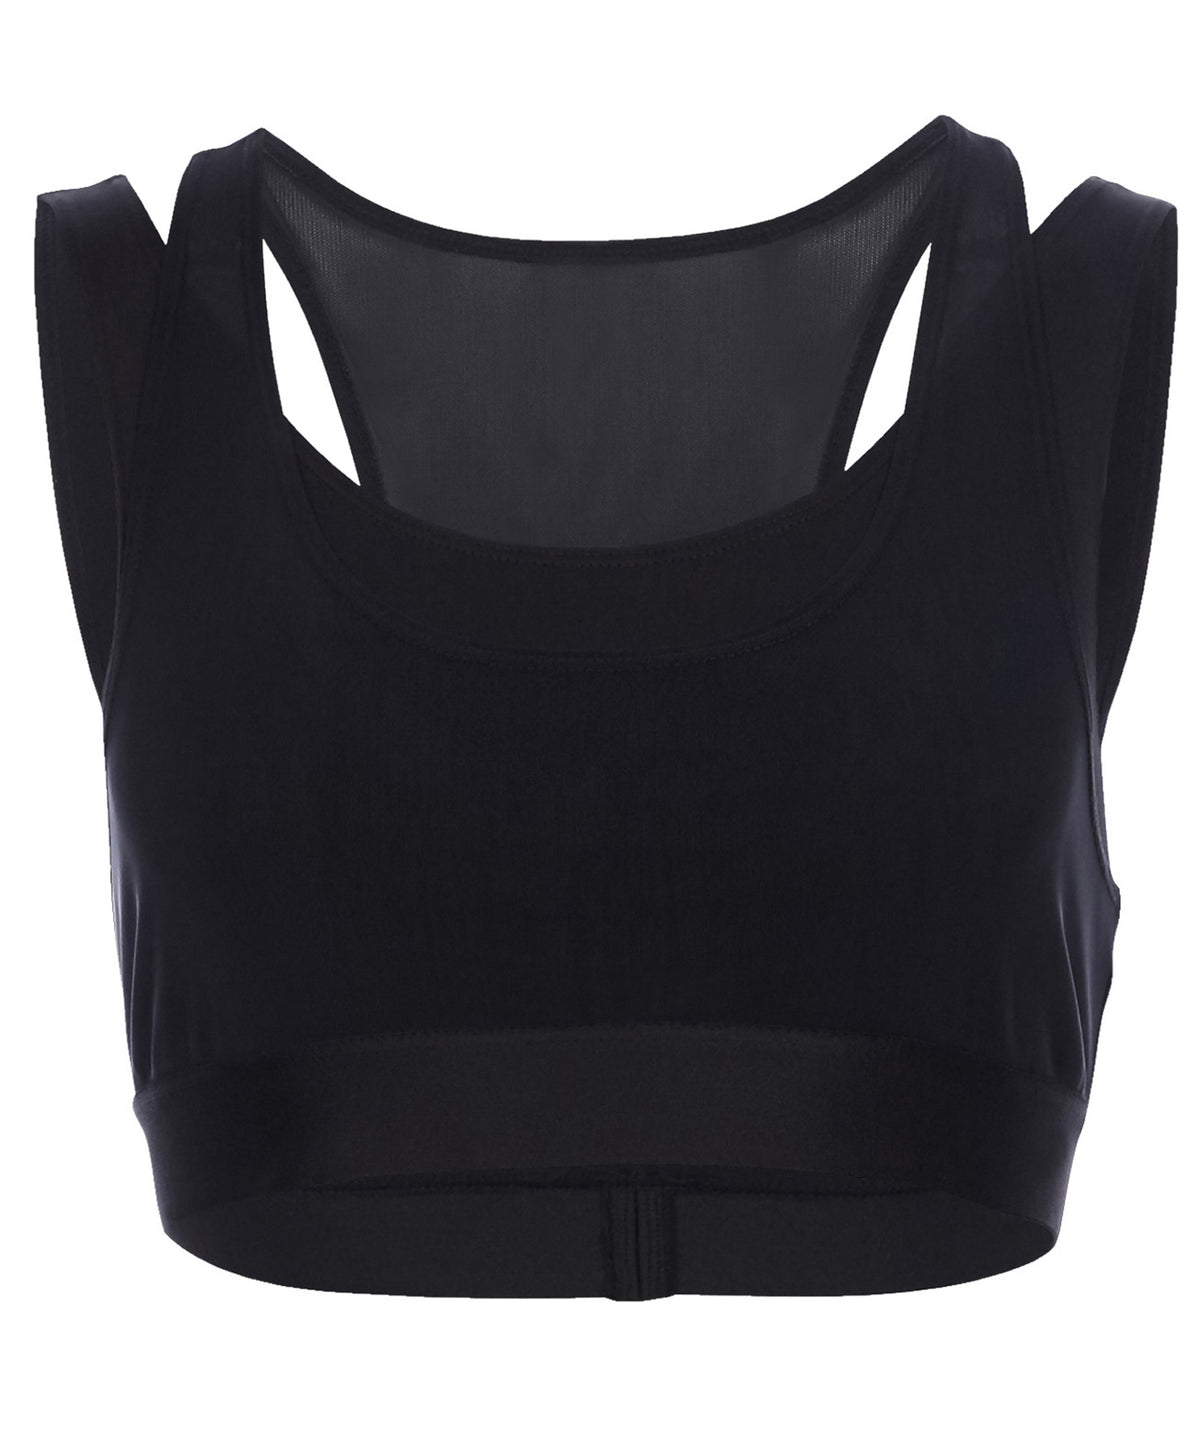 Heroine Sport Racing Women Black Top